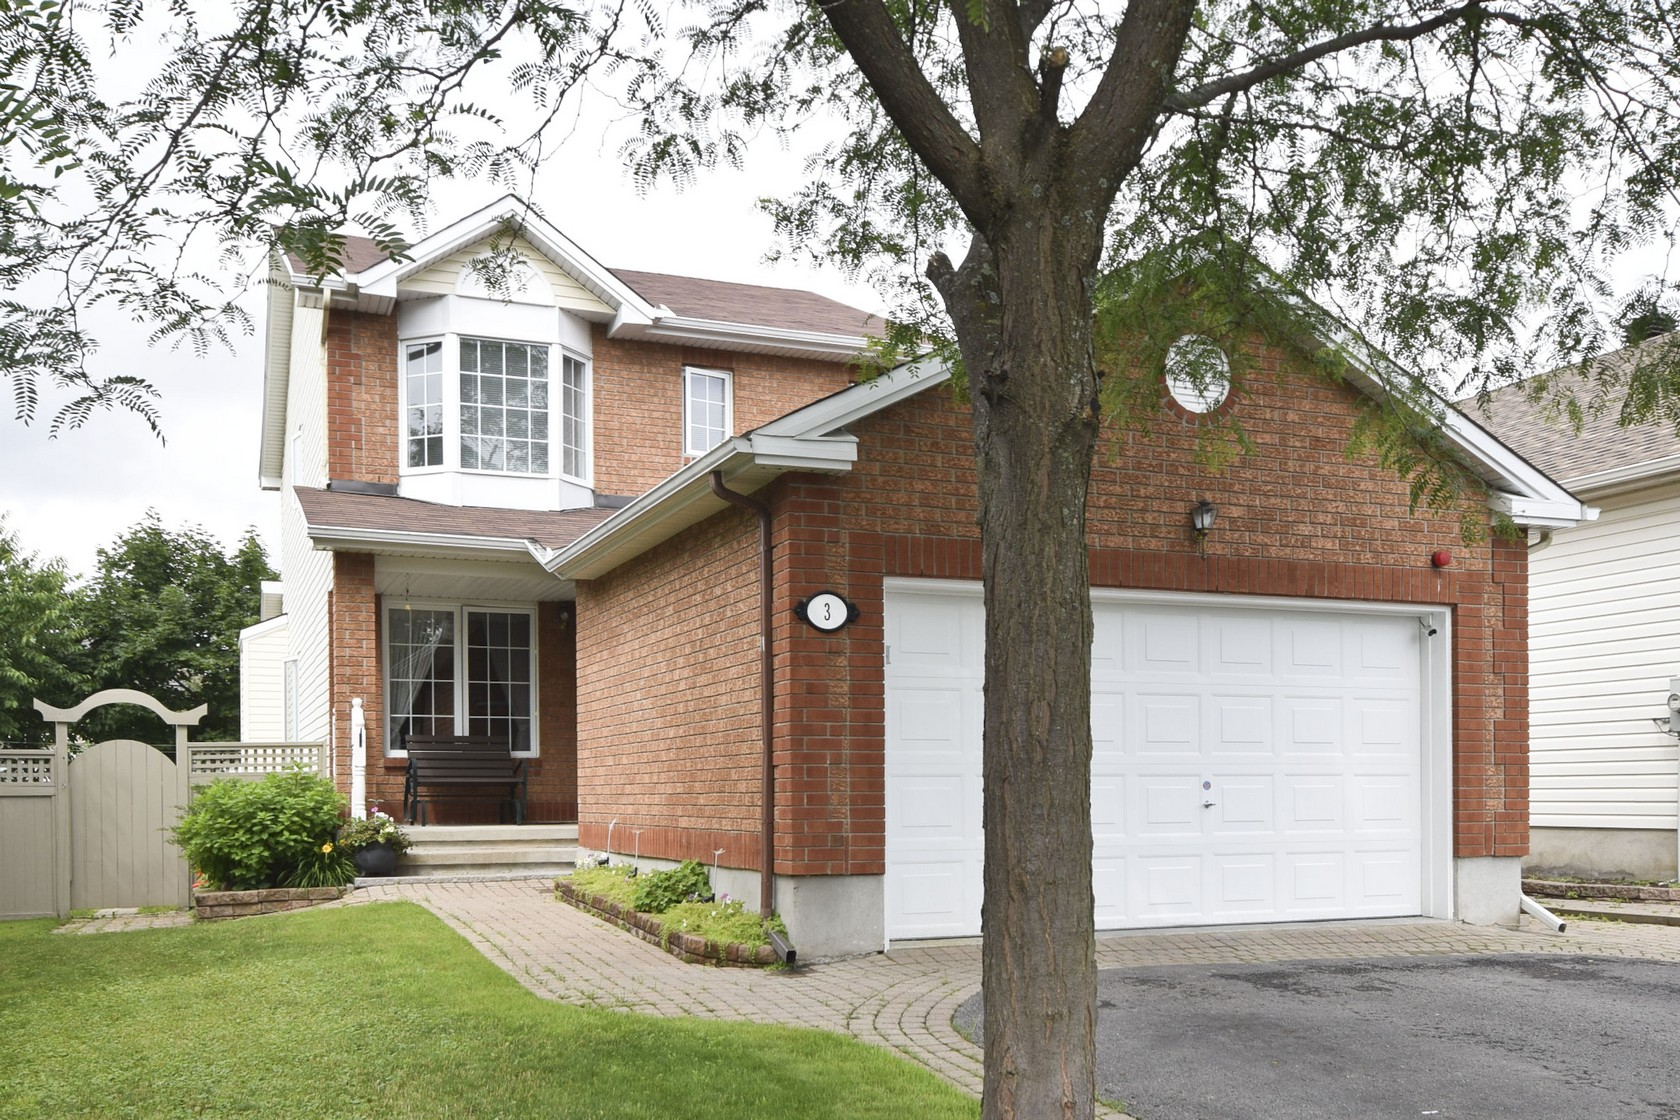 3 Meadowcroft Crescent | Well-Maintained 3 Bedroom Single Family Home in Carson Grove